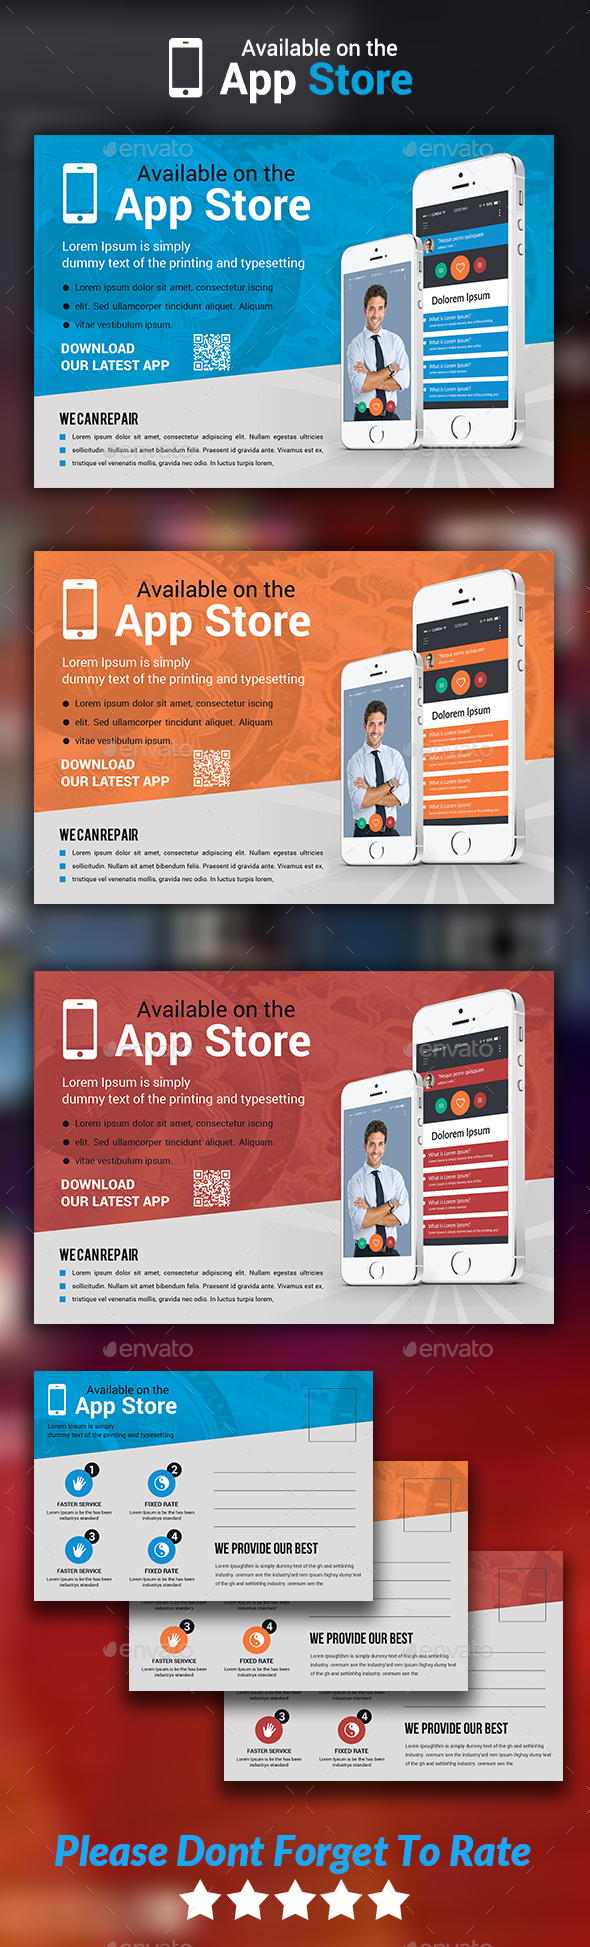 Mobile App Postcard Templates - Cards & Invites Print Templates